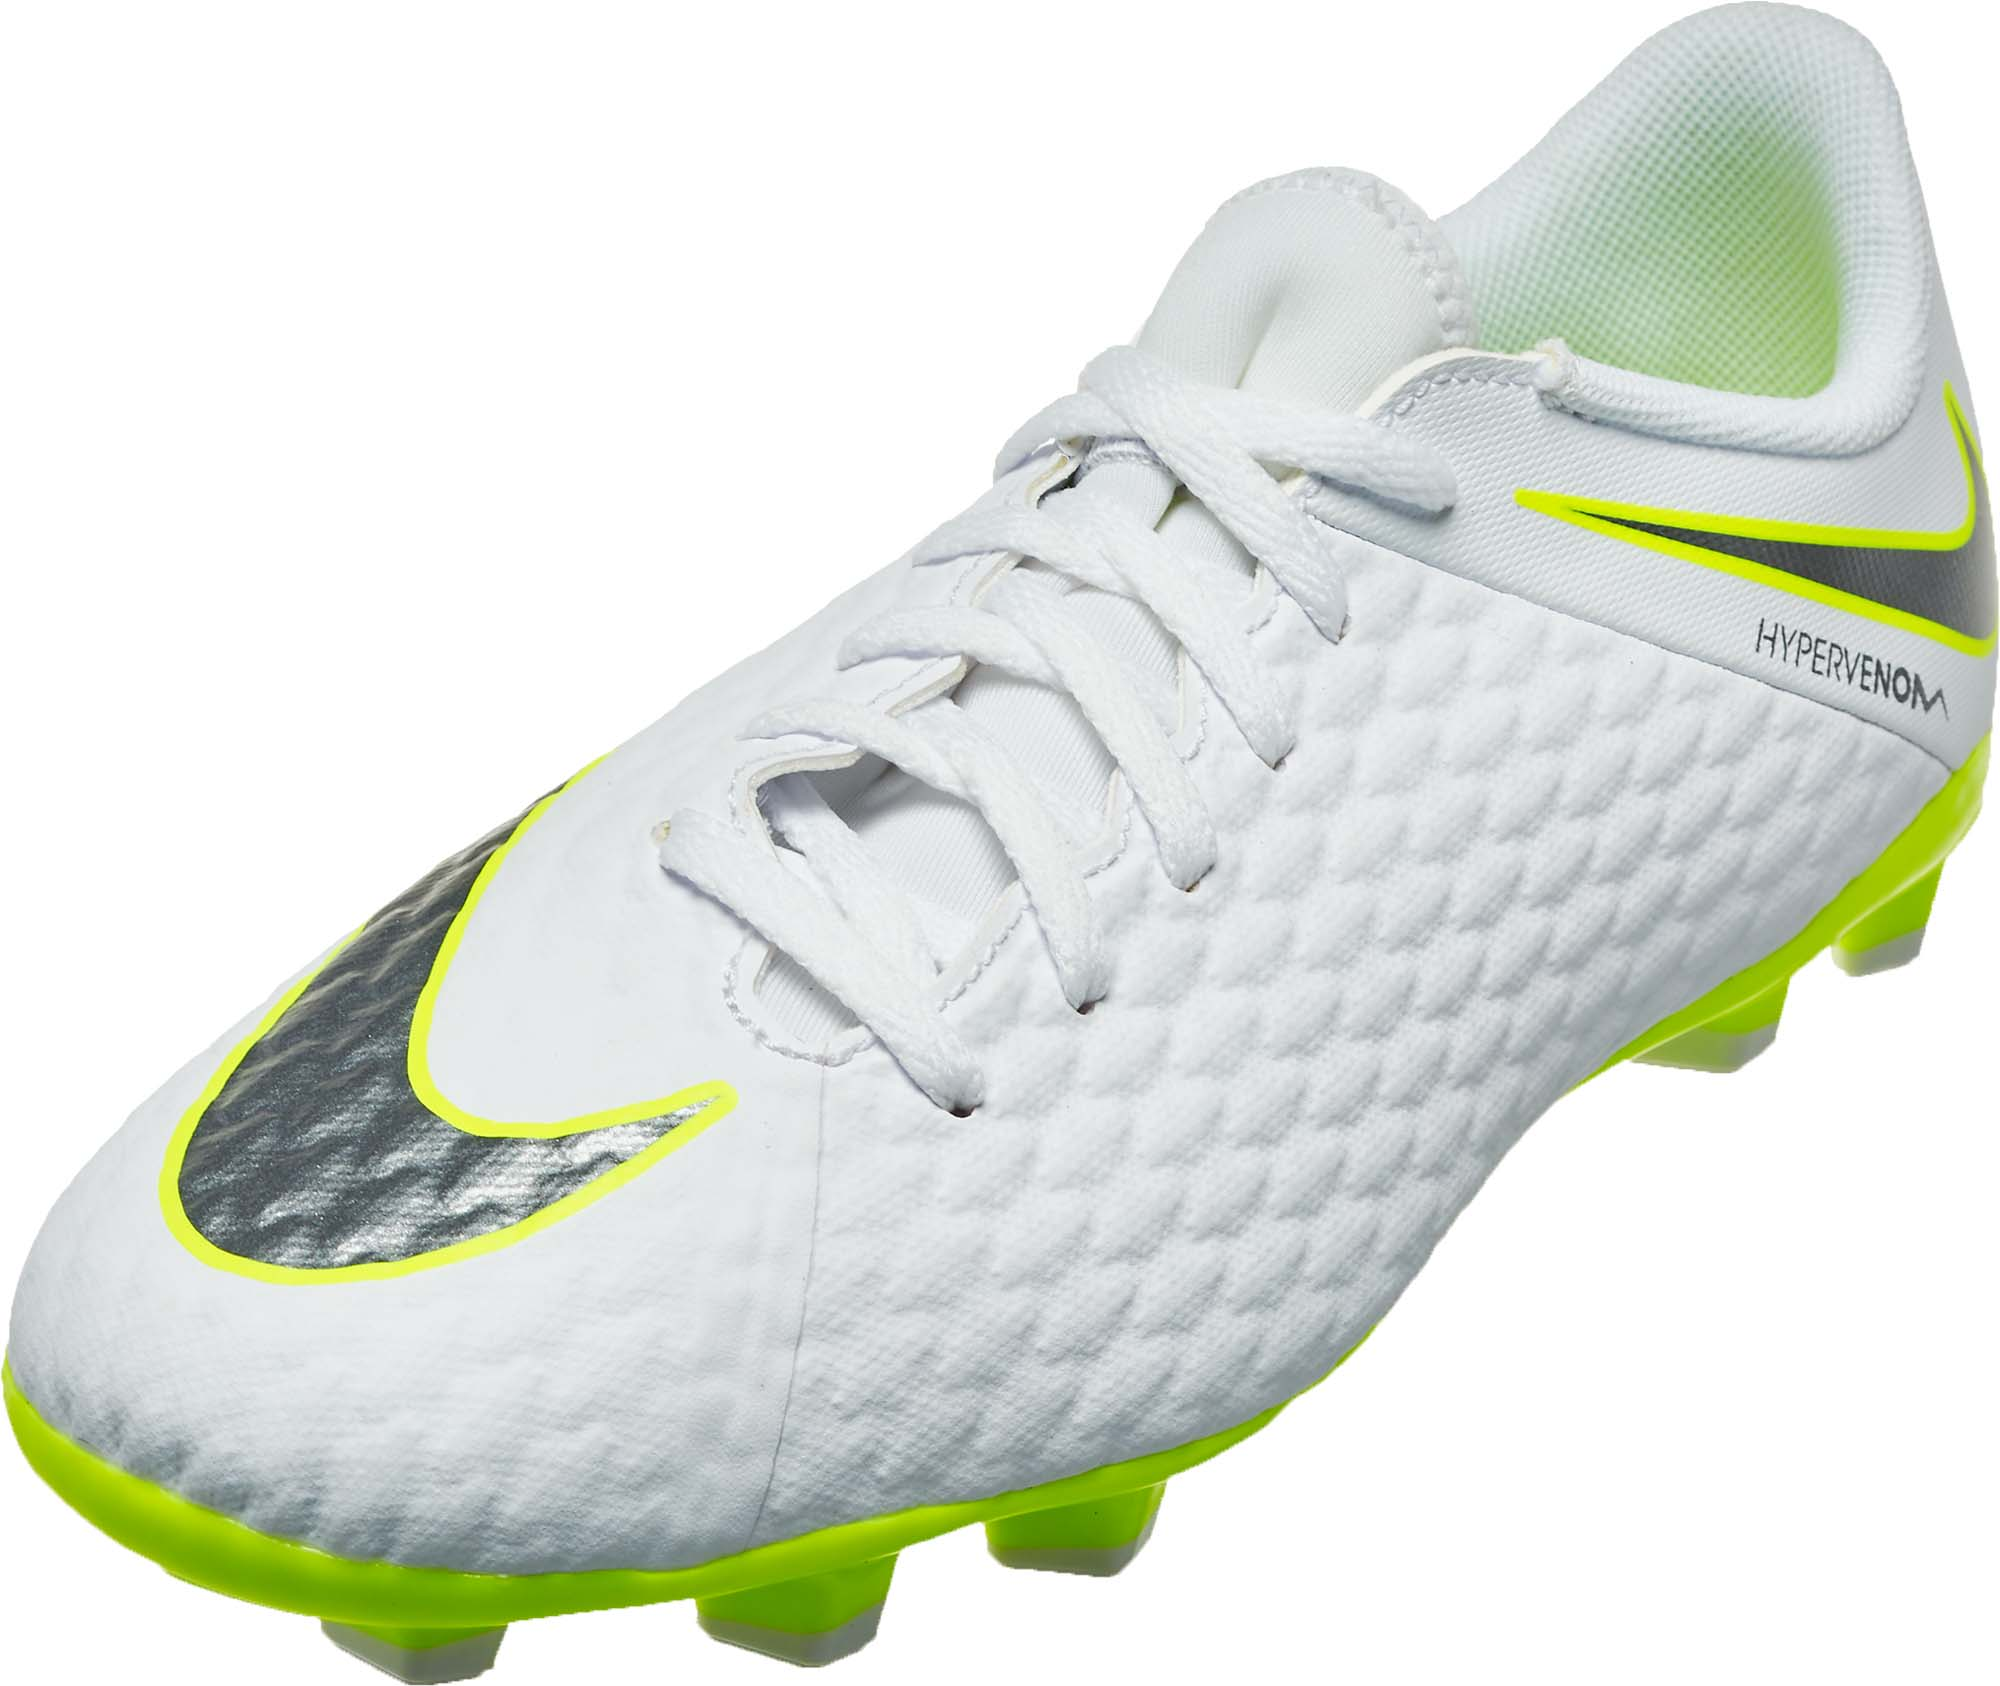 timeless design c83bc 0acf2 Nike Hypervenom Phantom 3 Academy FG – Youth – White/Volt